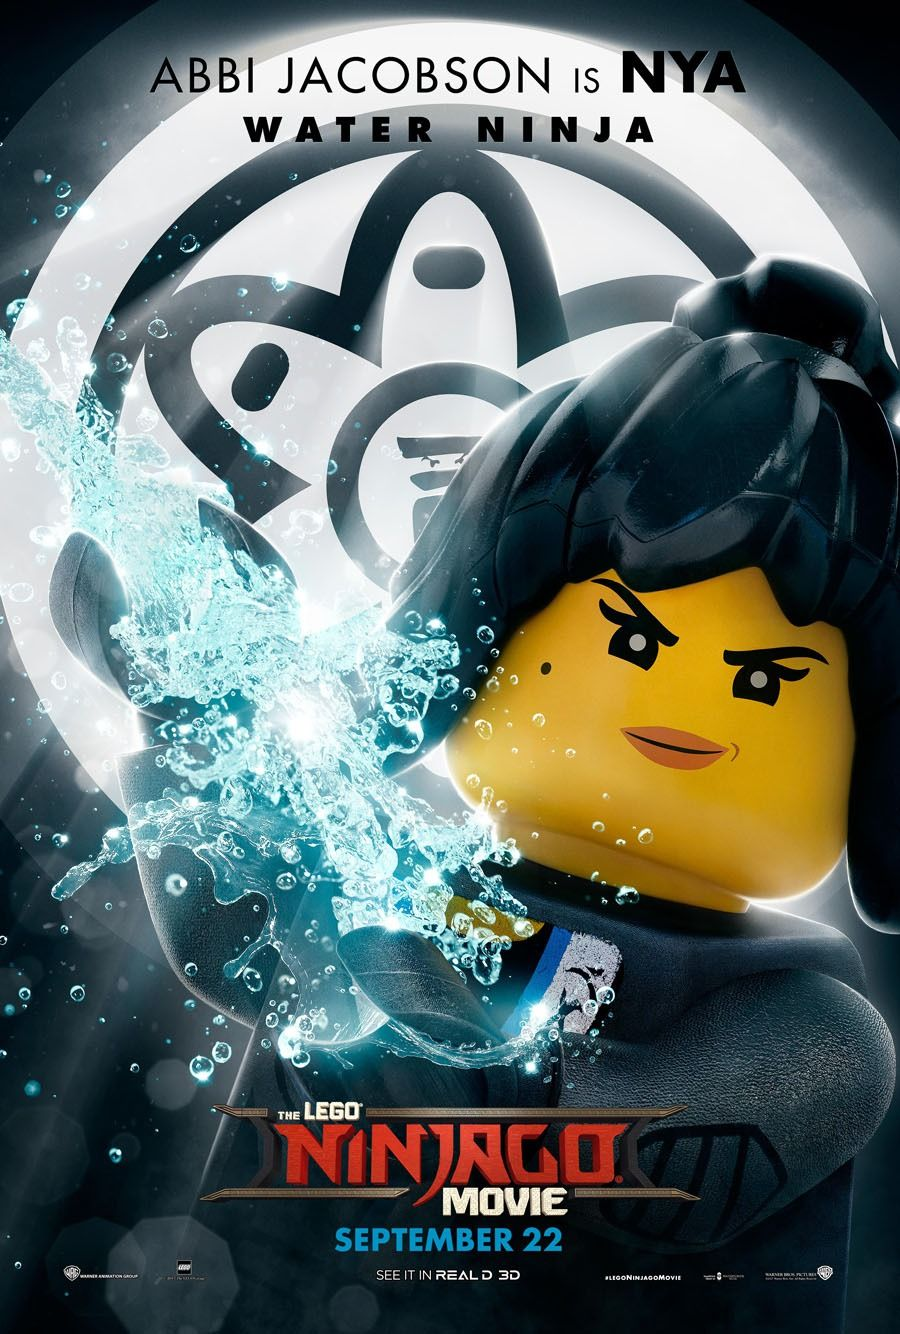 Return To The Main Poster Page For The Lego Ninjago Movie 28 Of 36 Lego Ninjago Movie Lego Ninjago Nya Lego Ninjago